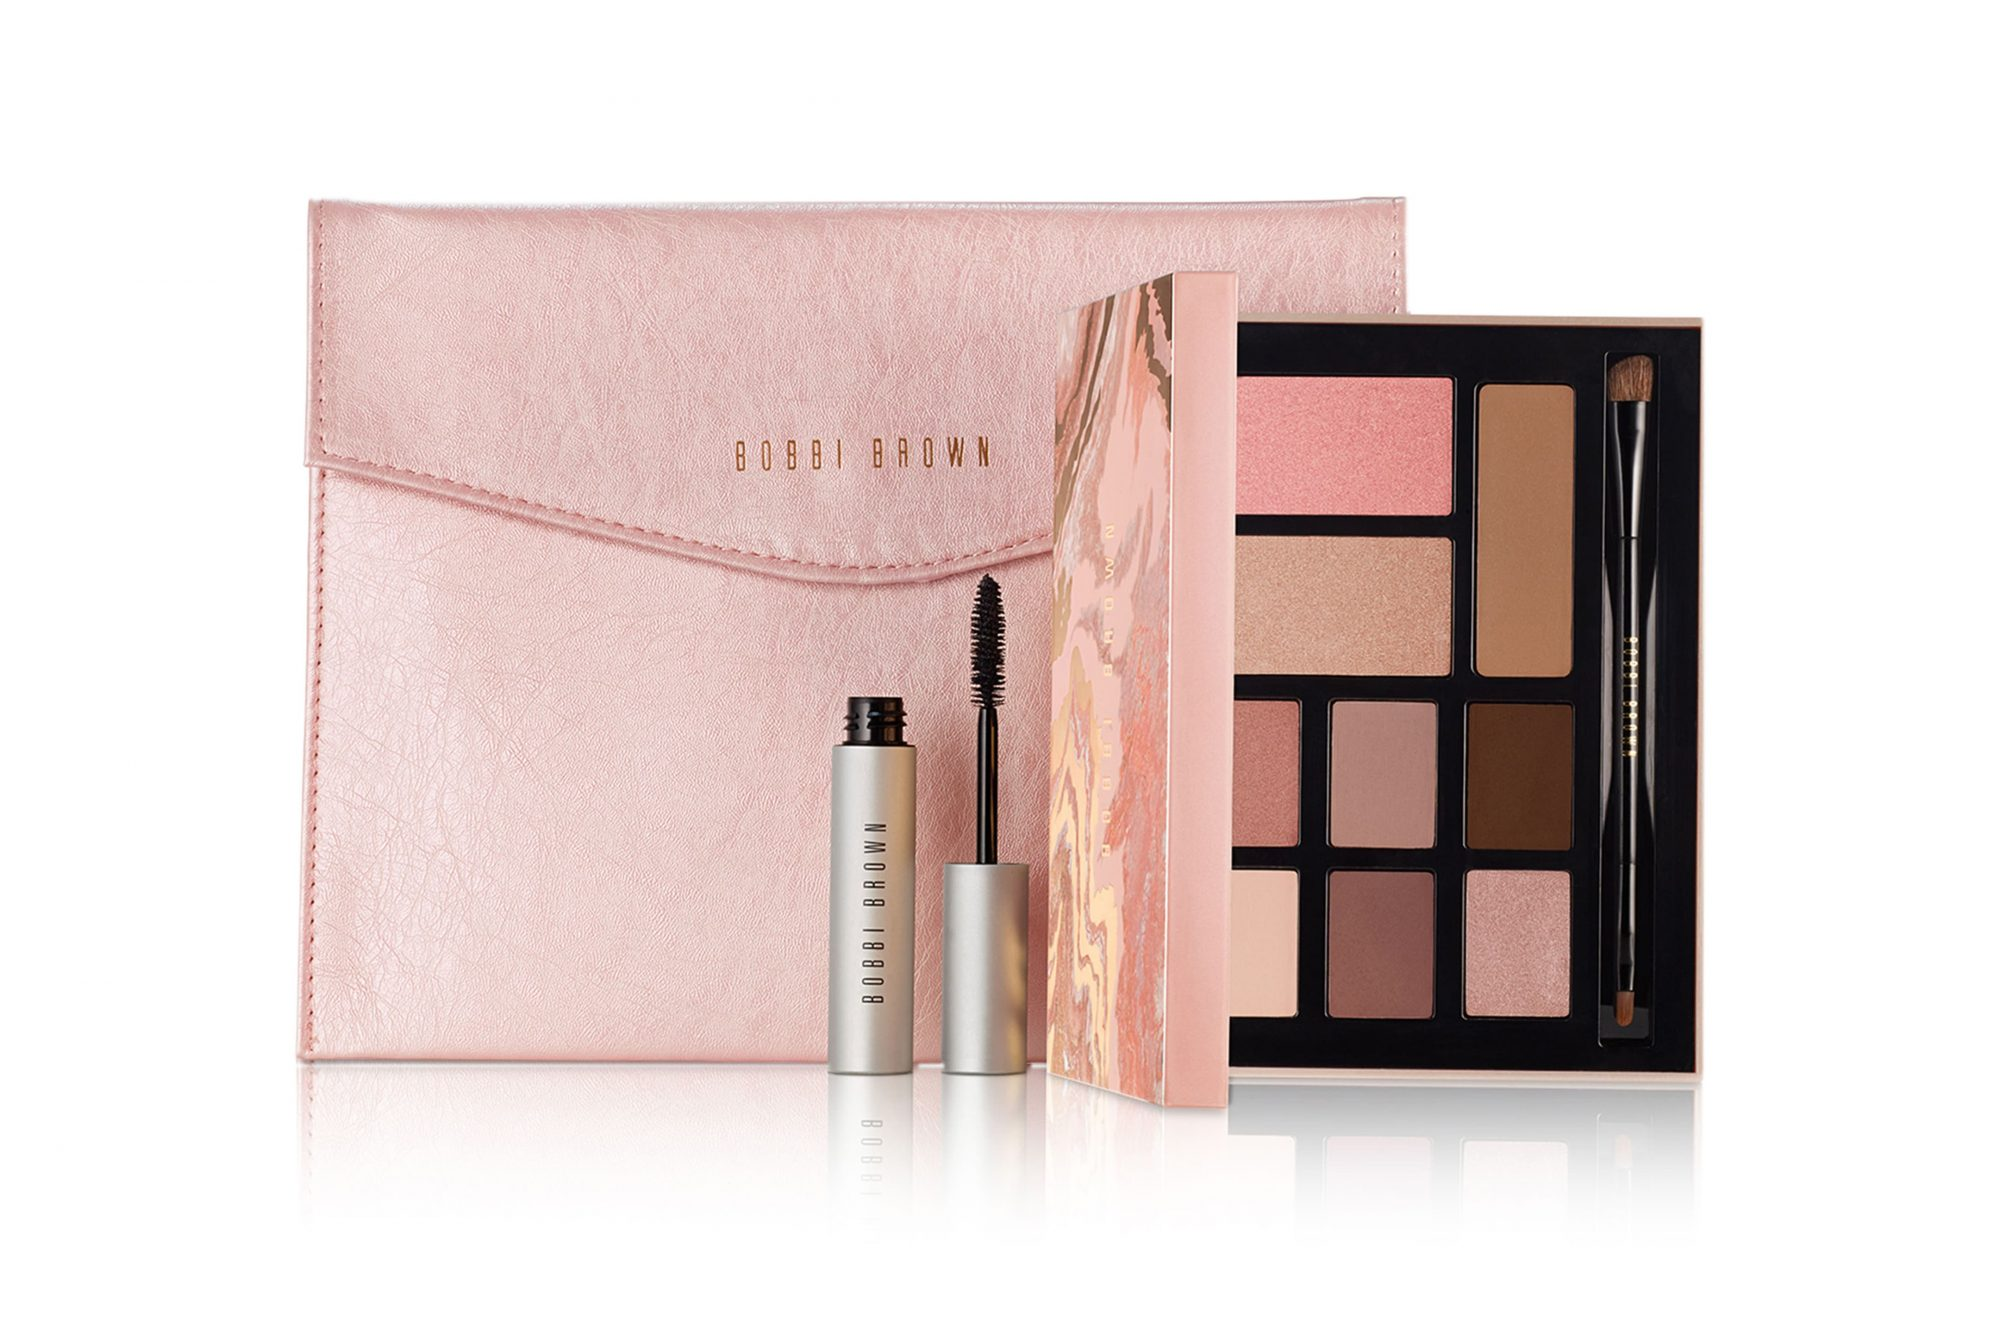 Mother's Day gifts 2020 Bobbi brown